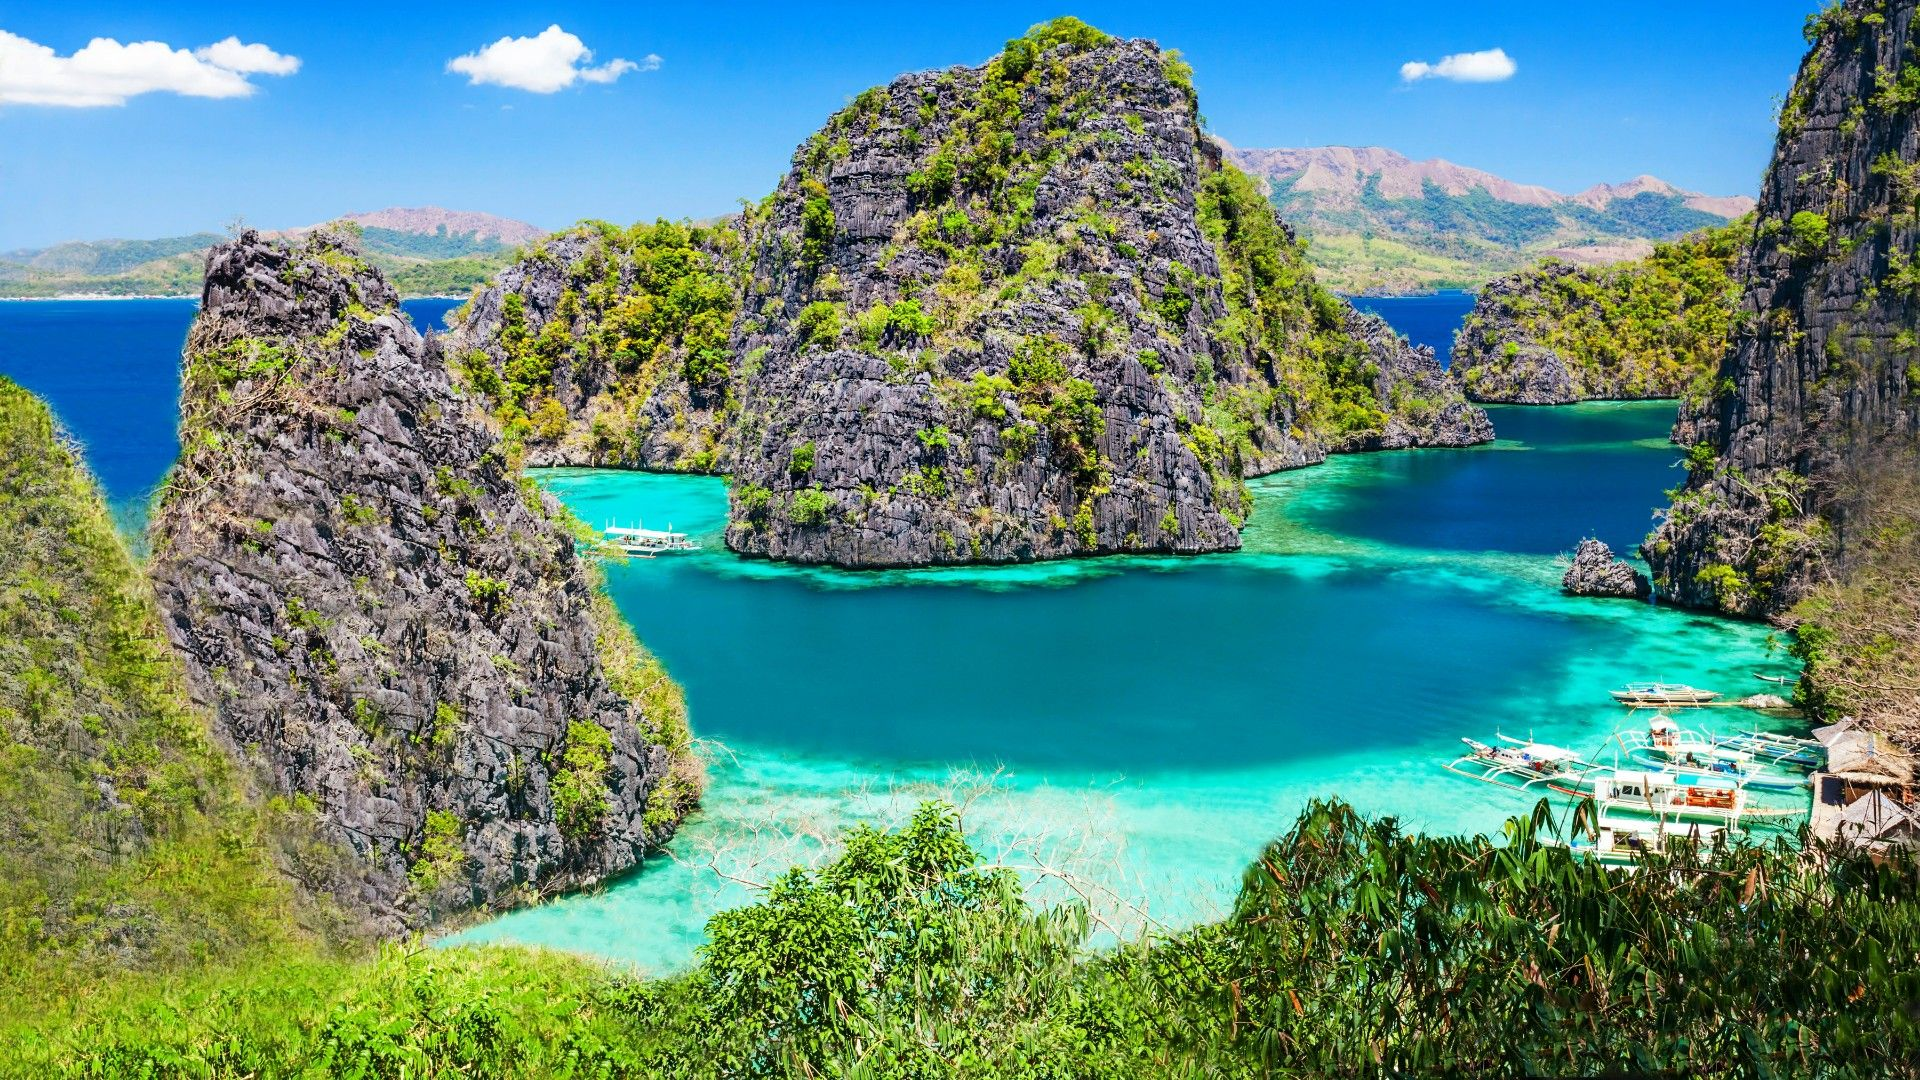 8k Ultra Hd Philippine Nature Wallpapers Top Free 8k Ultra